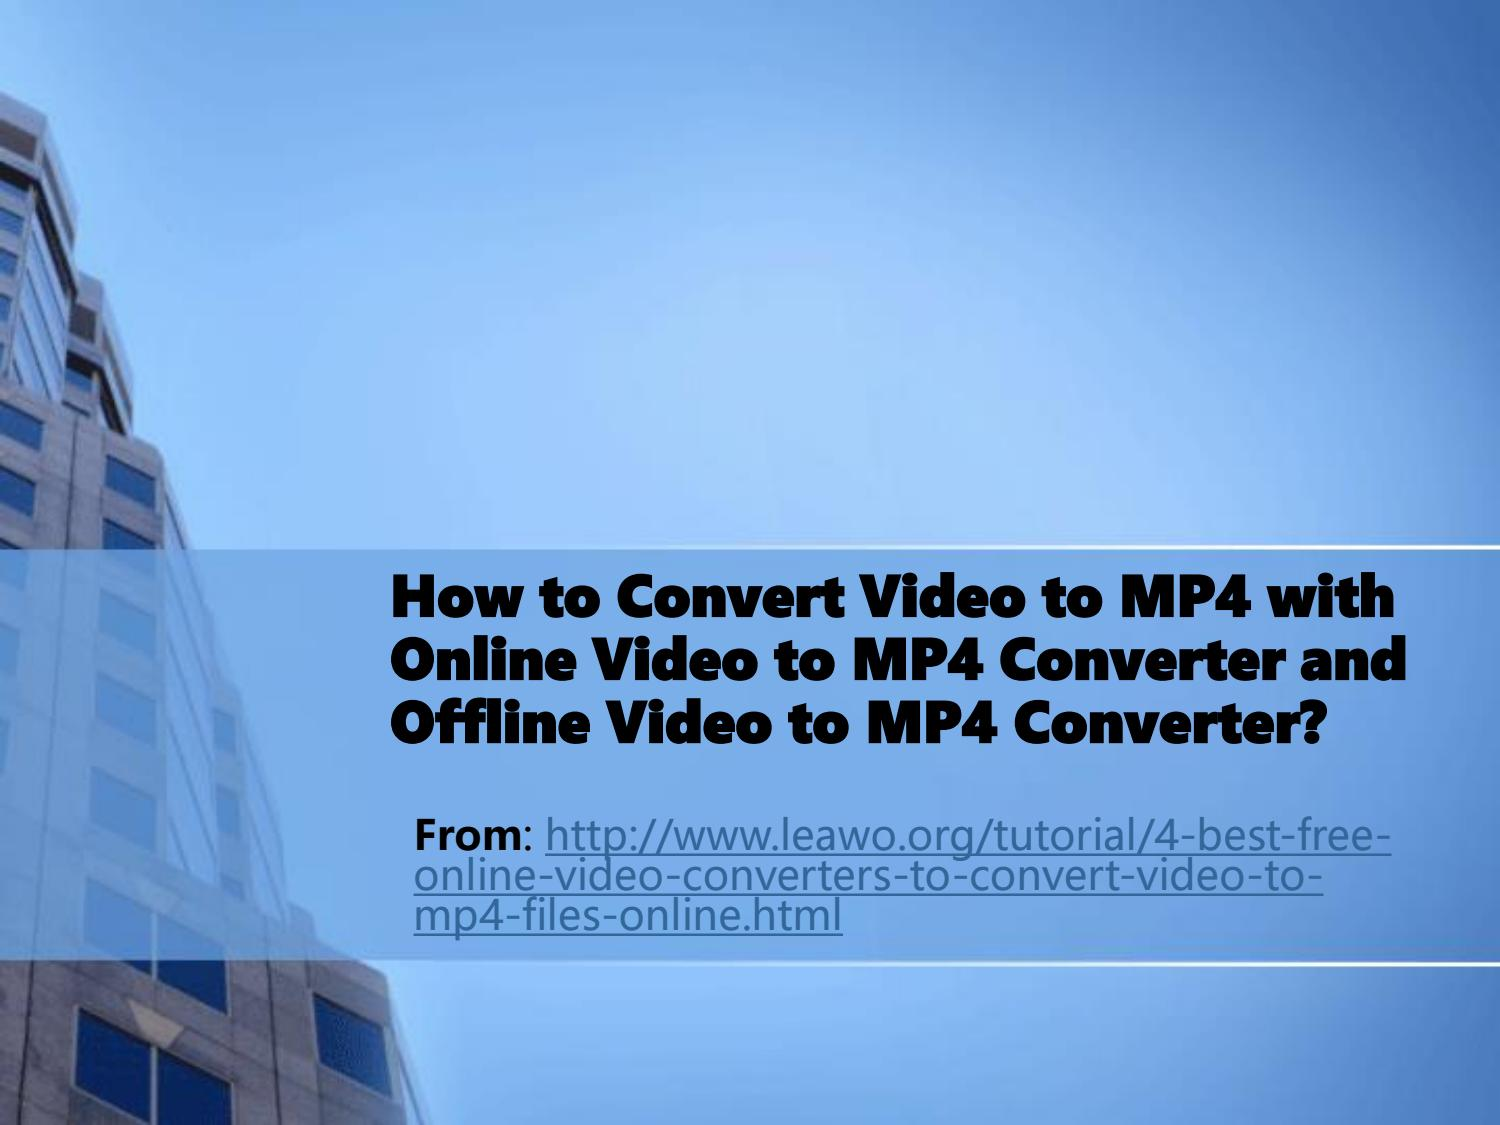 How to convert video to mp4 with online video to mp4